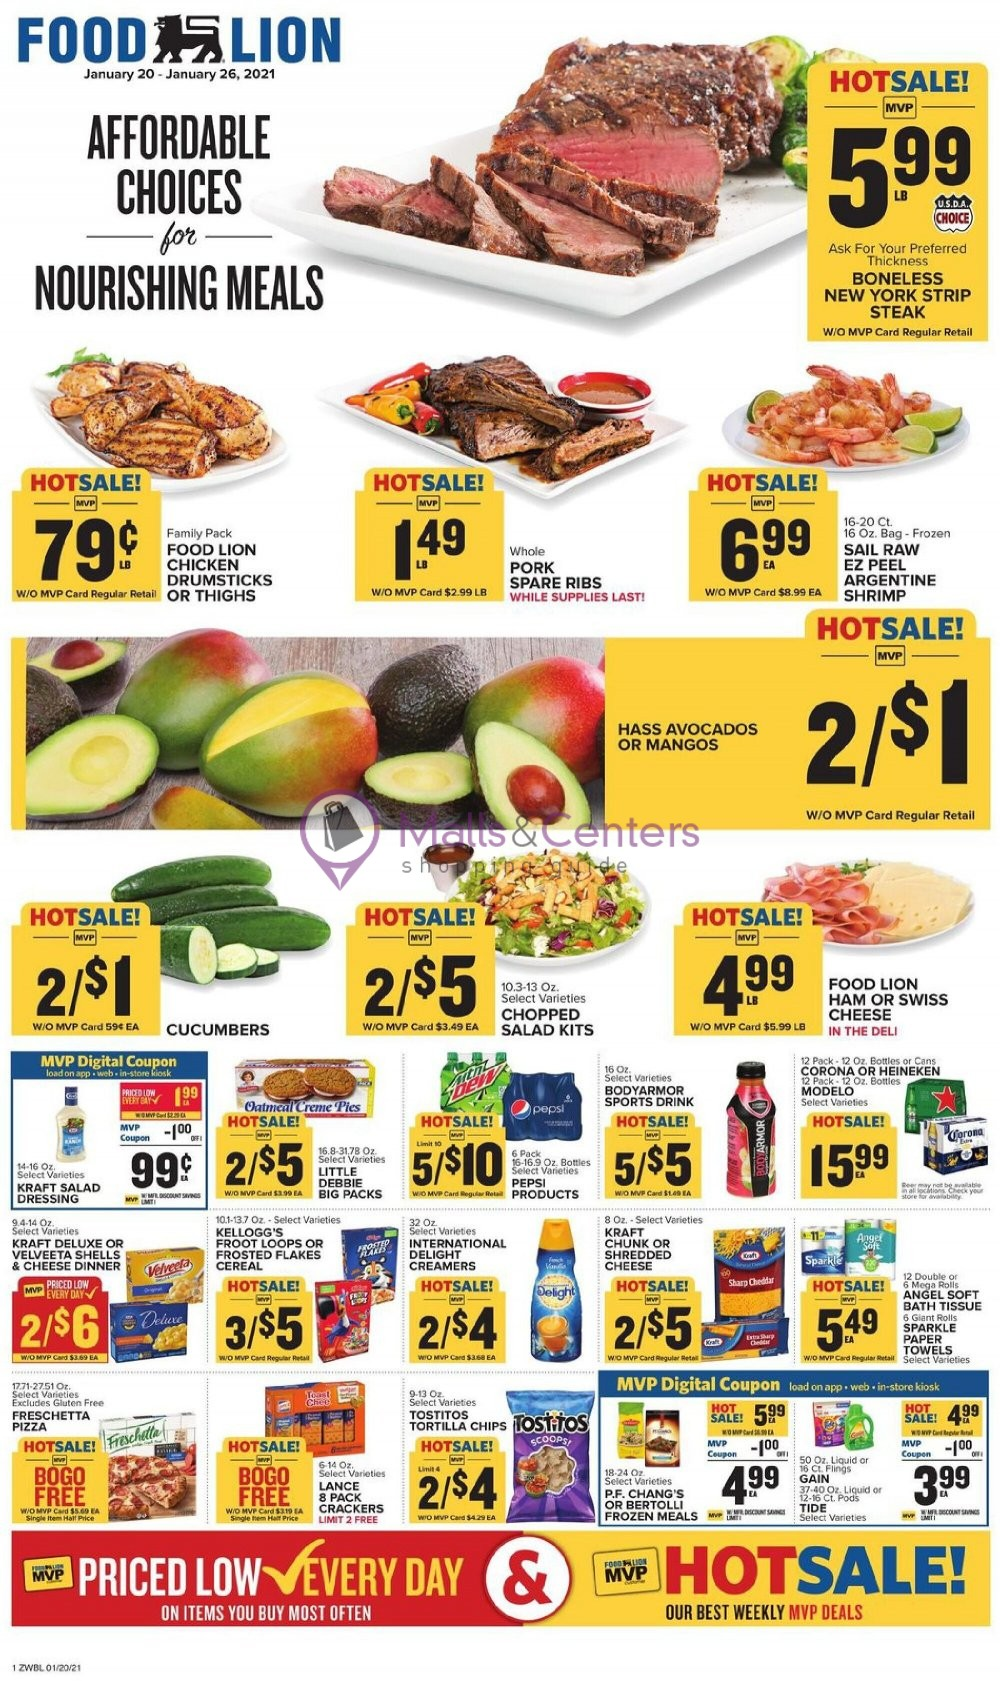 weekly ads Food Lion - page 1 - mallscenters.com